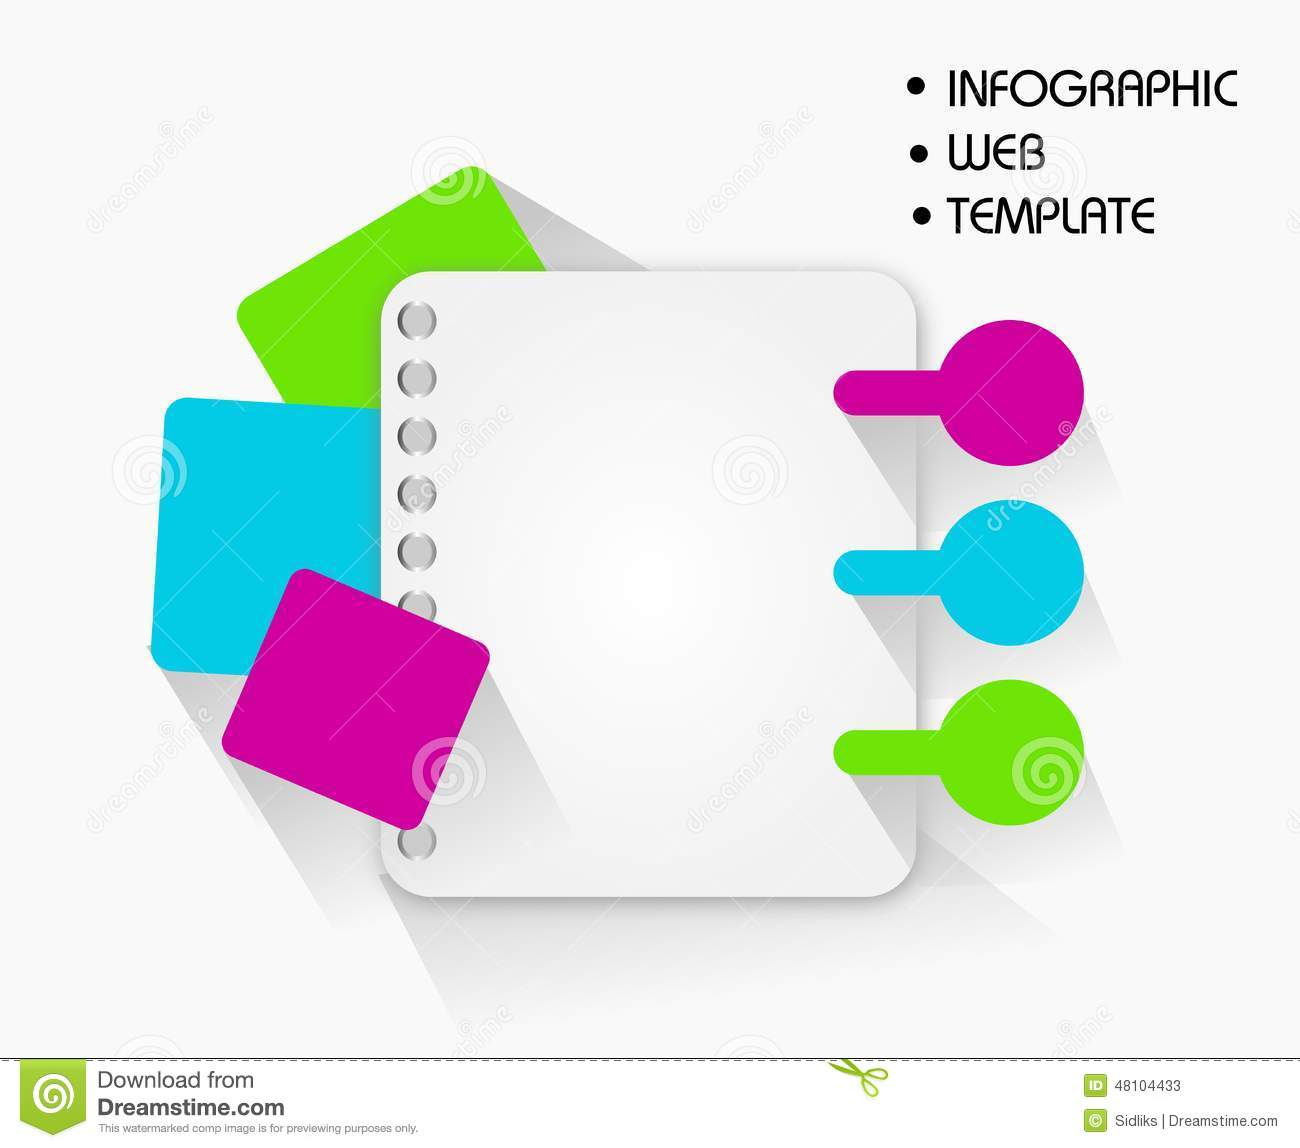 infographic web template stock illustration. illustration of